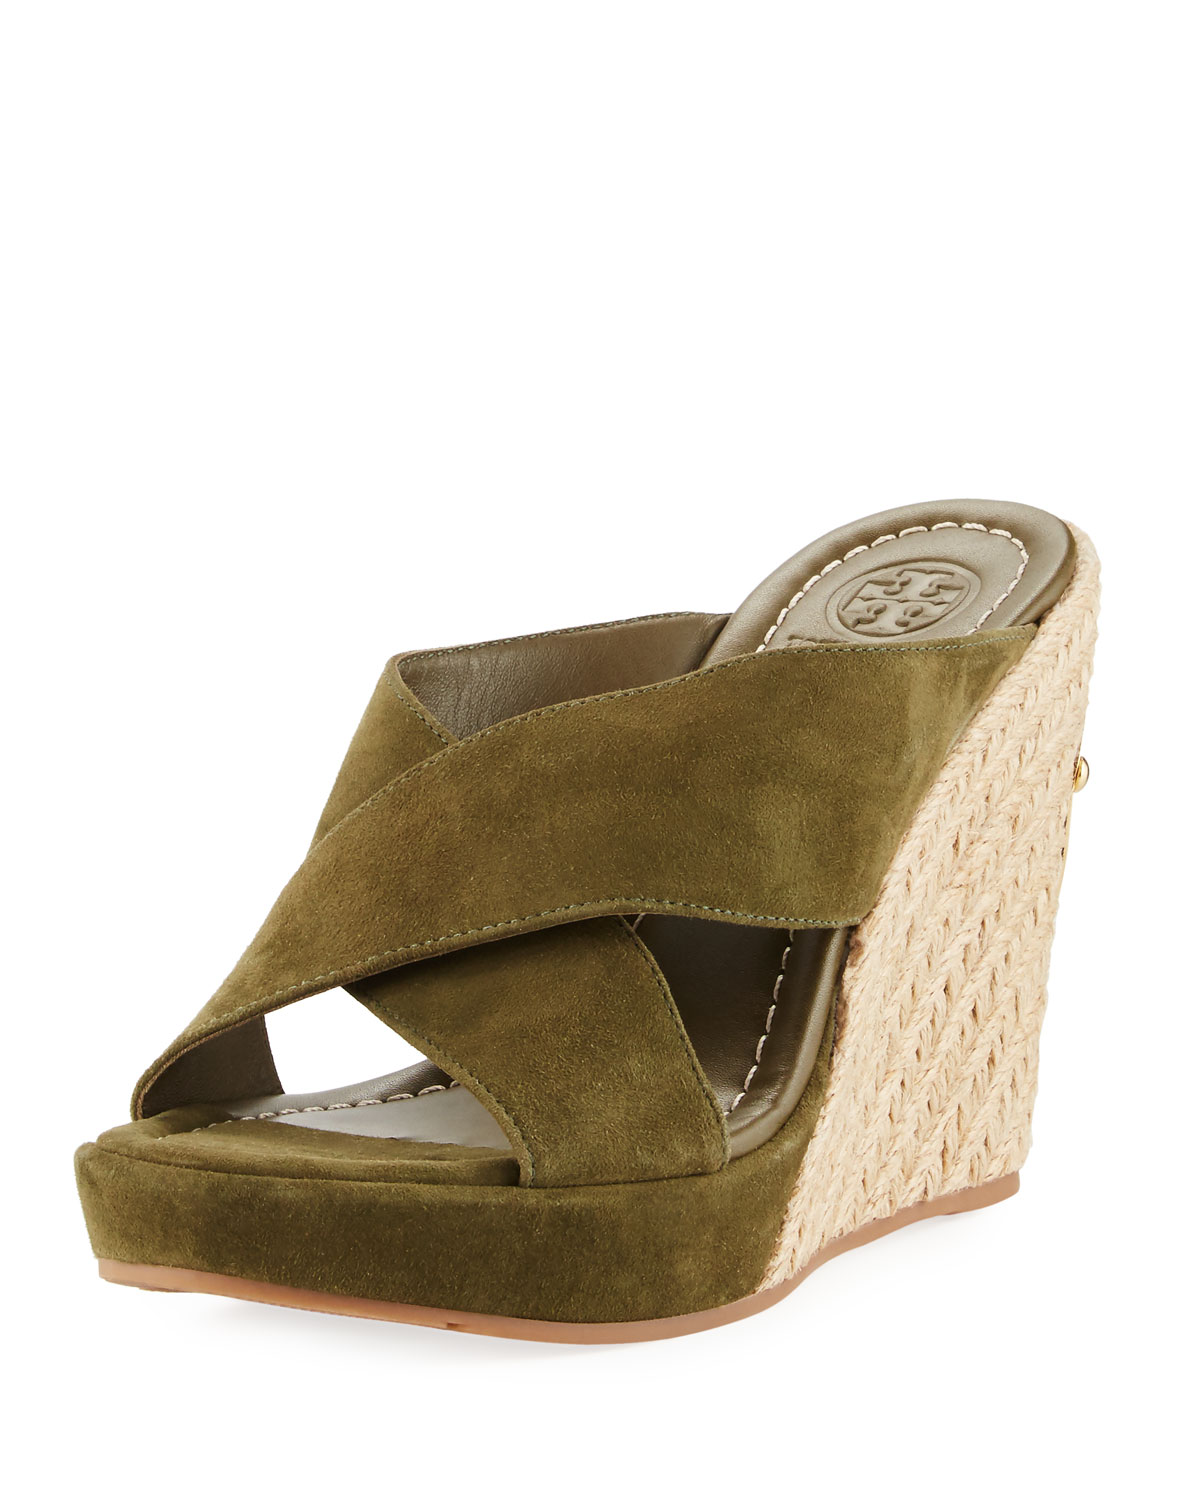 347a9fae02 Tory Burch Bailey Suede Platform Wedge Mule Sandal | Neiman Marcus